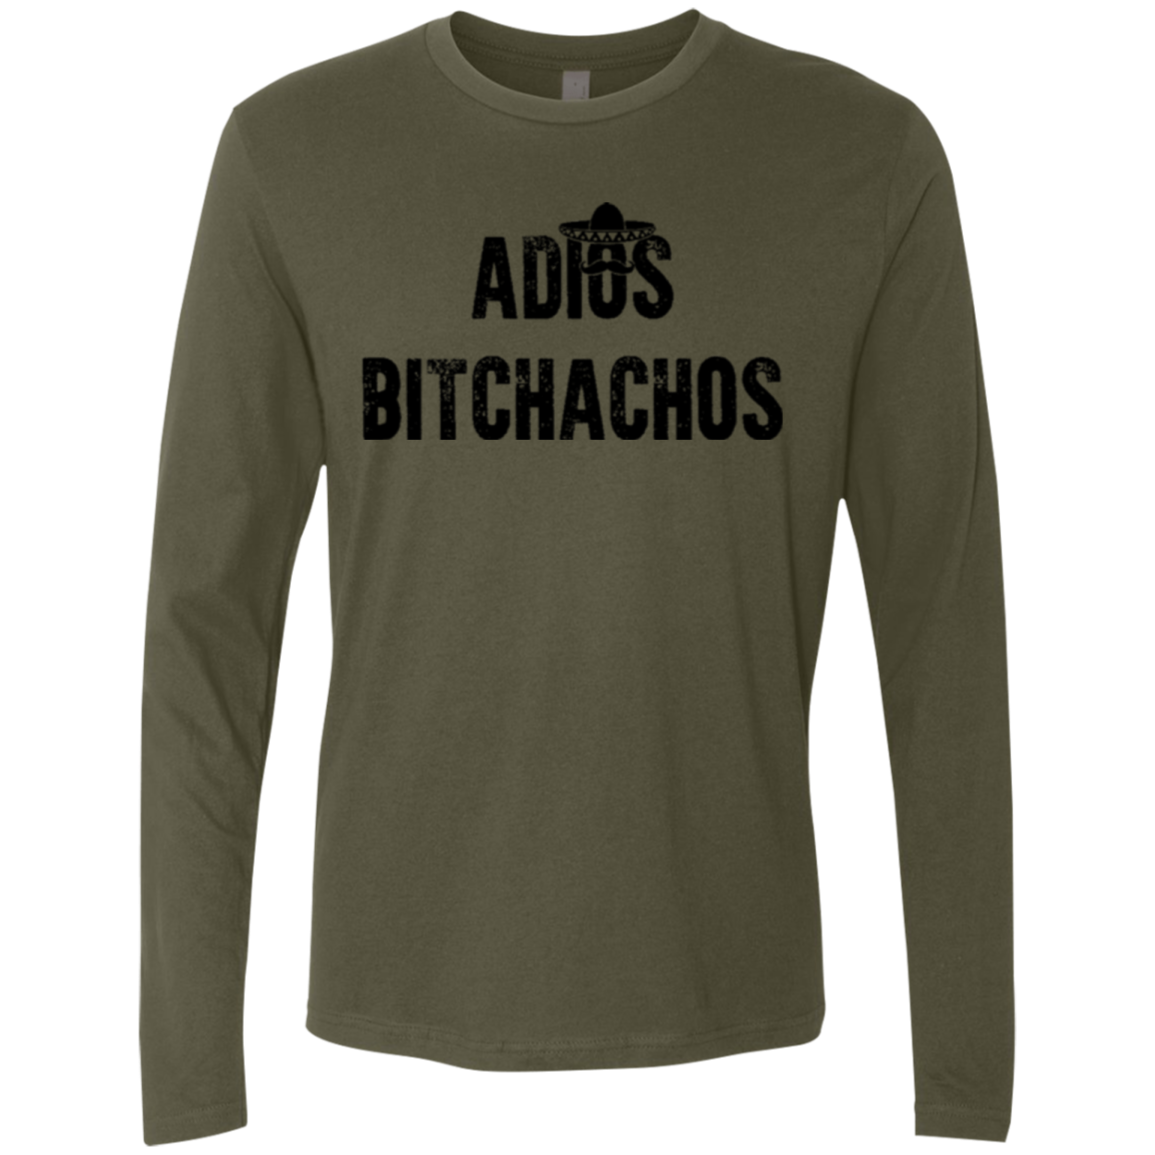 Adios Bitchachos Men's Long Sleeve Tee - Trendy Tees